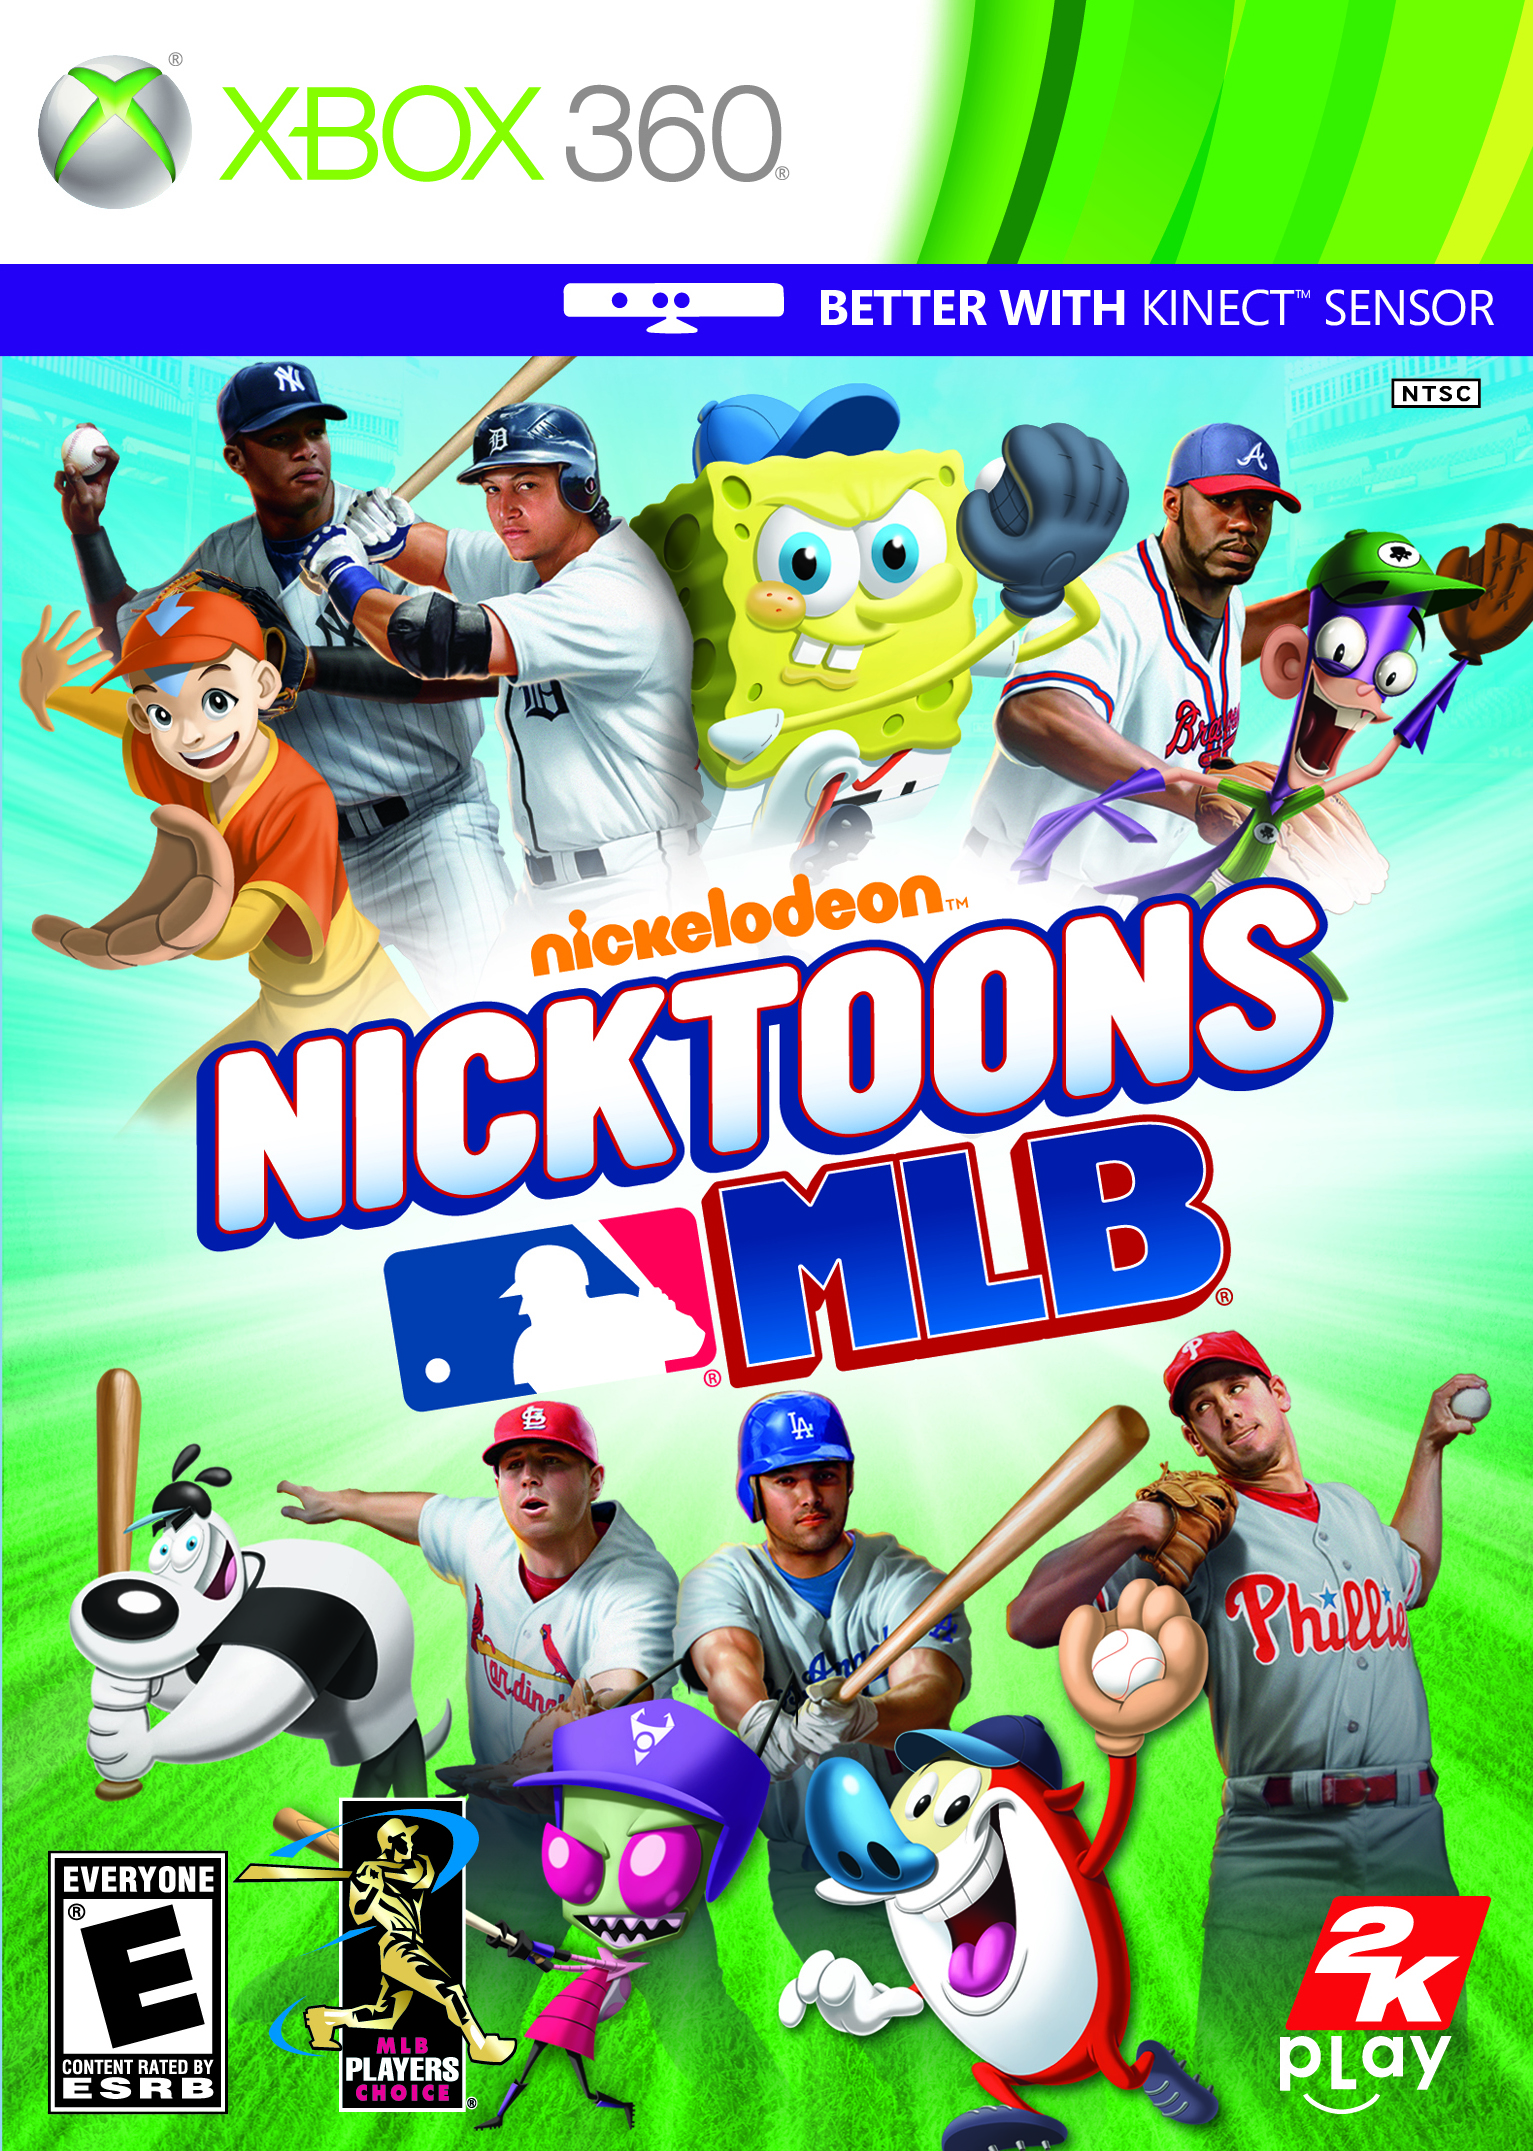 nicktoons invade mlb in upcoming video game beckett news